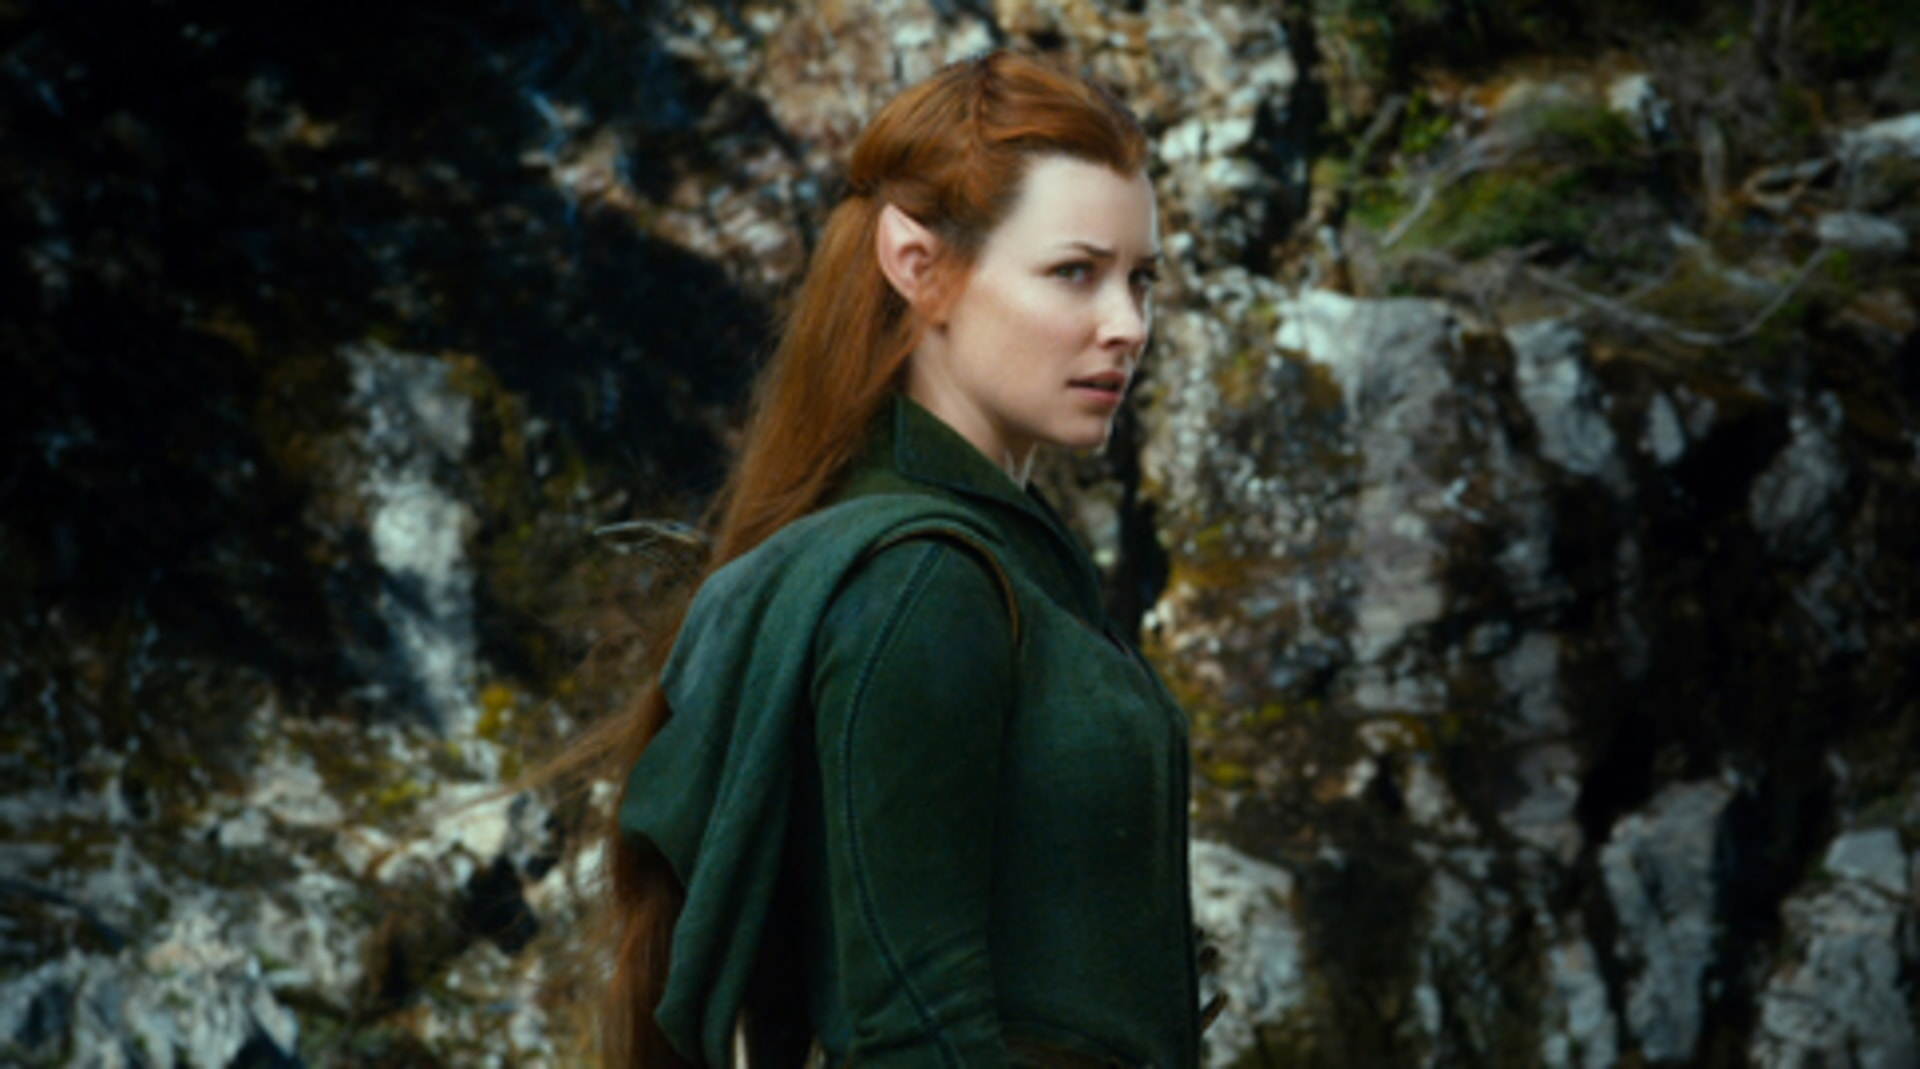 The Hobbit: The Desolation of Smaug - Image 32